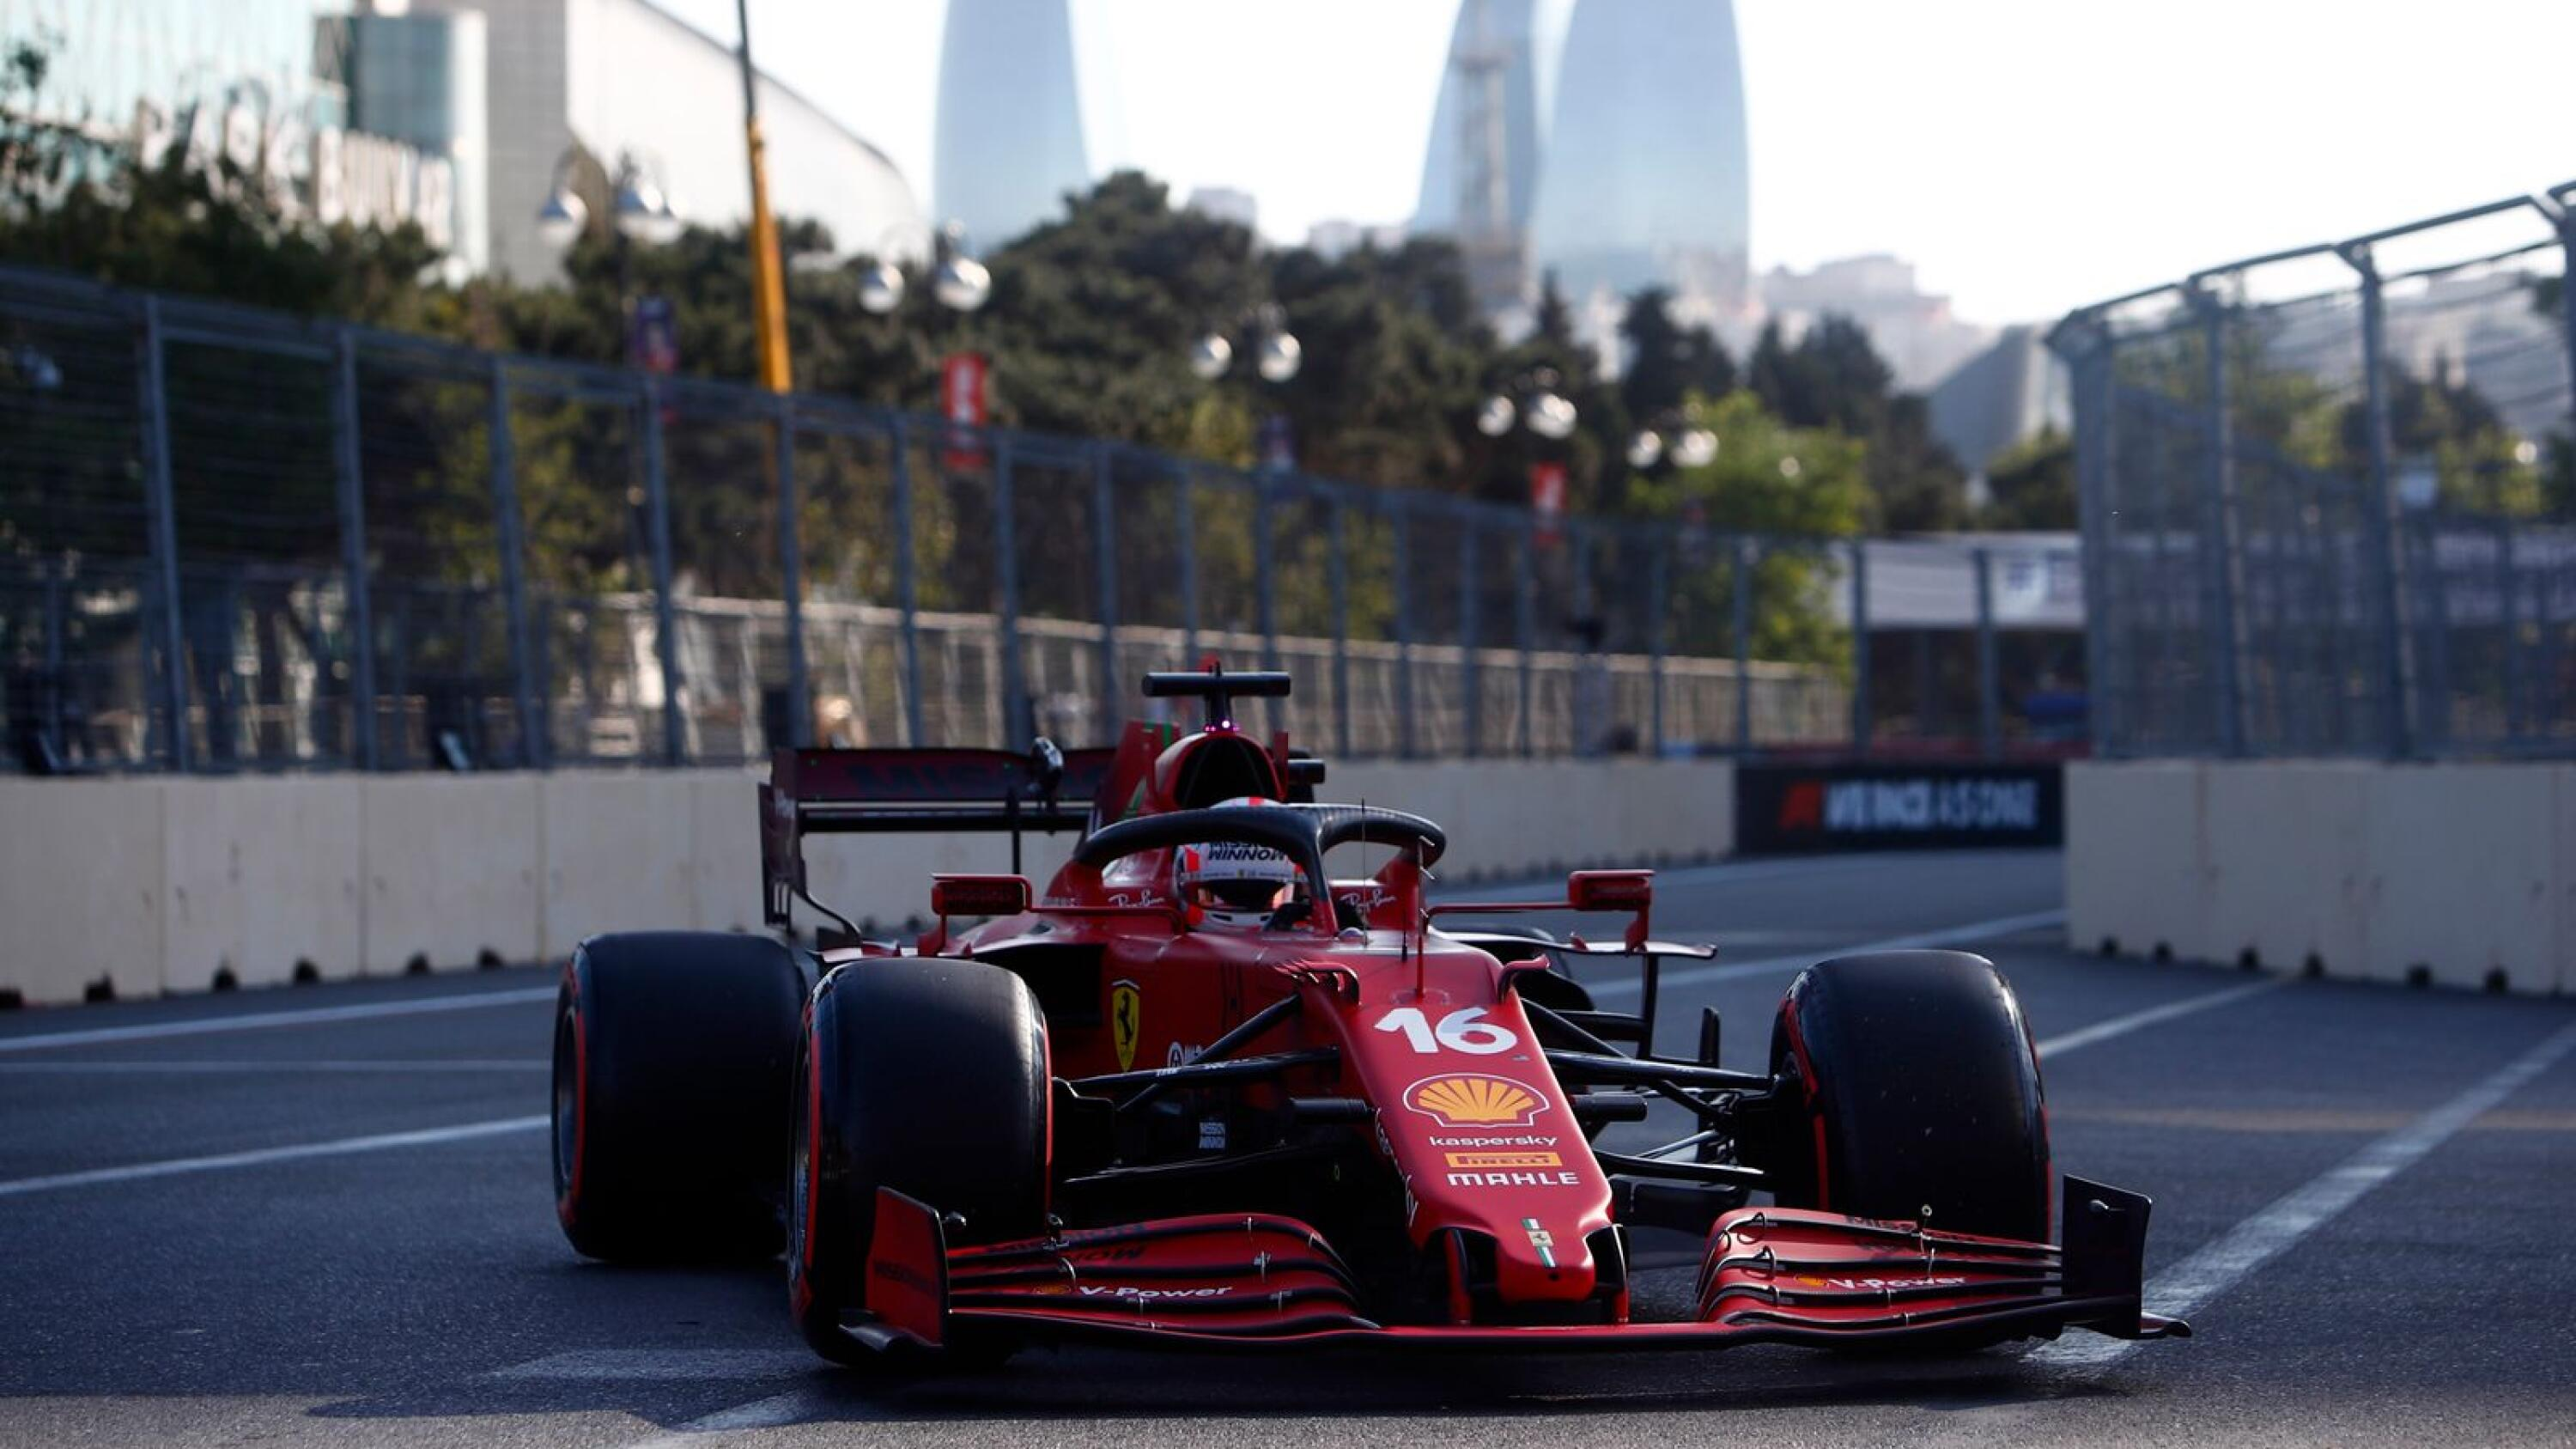 Ferrari's Charles Leclerc after qualifying in pole position for Sunday's Azerbaijan Grand Prix